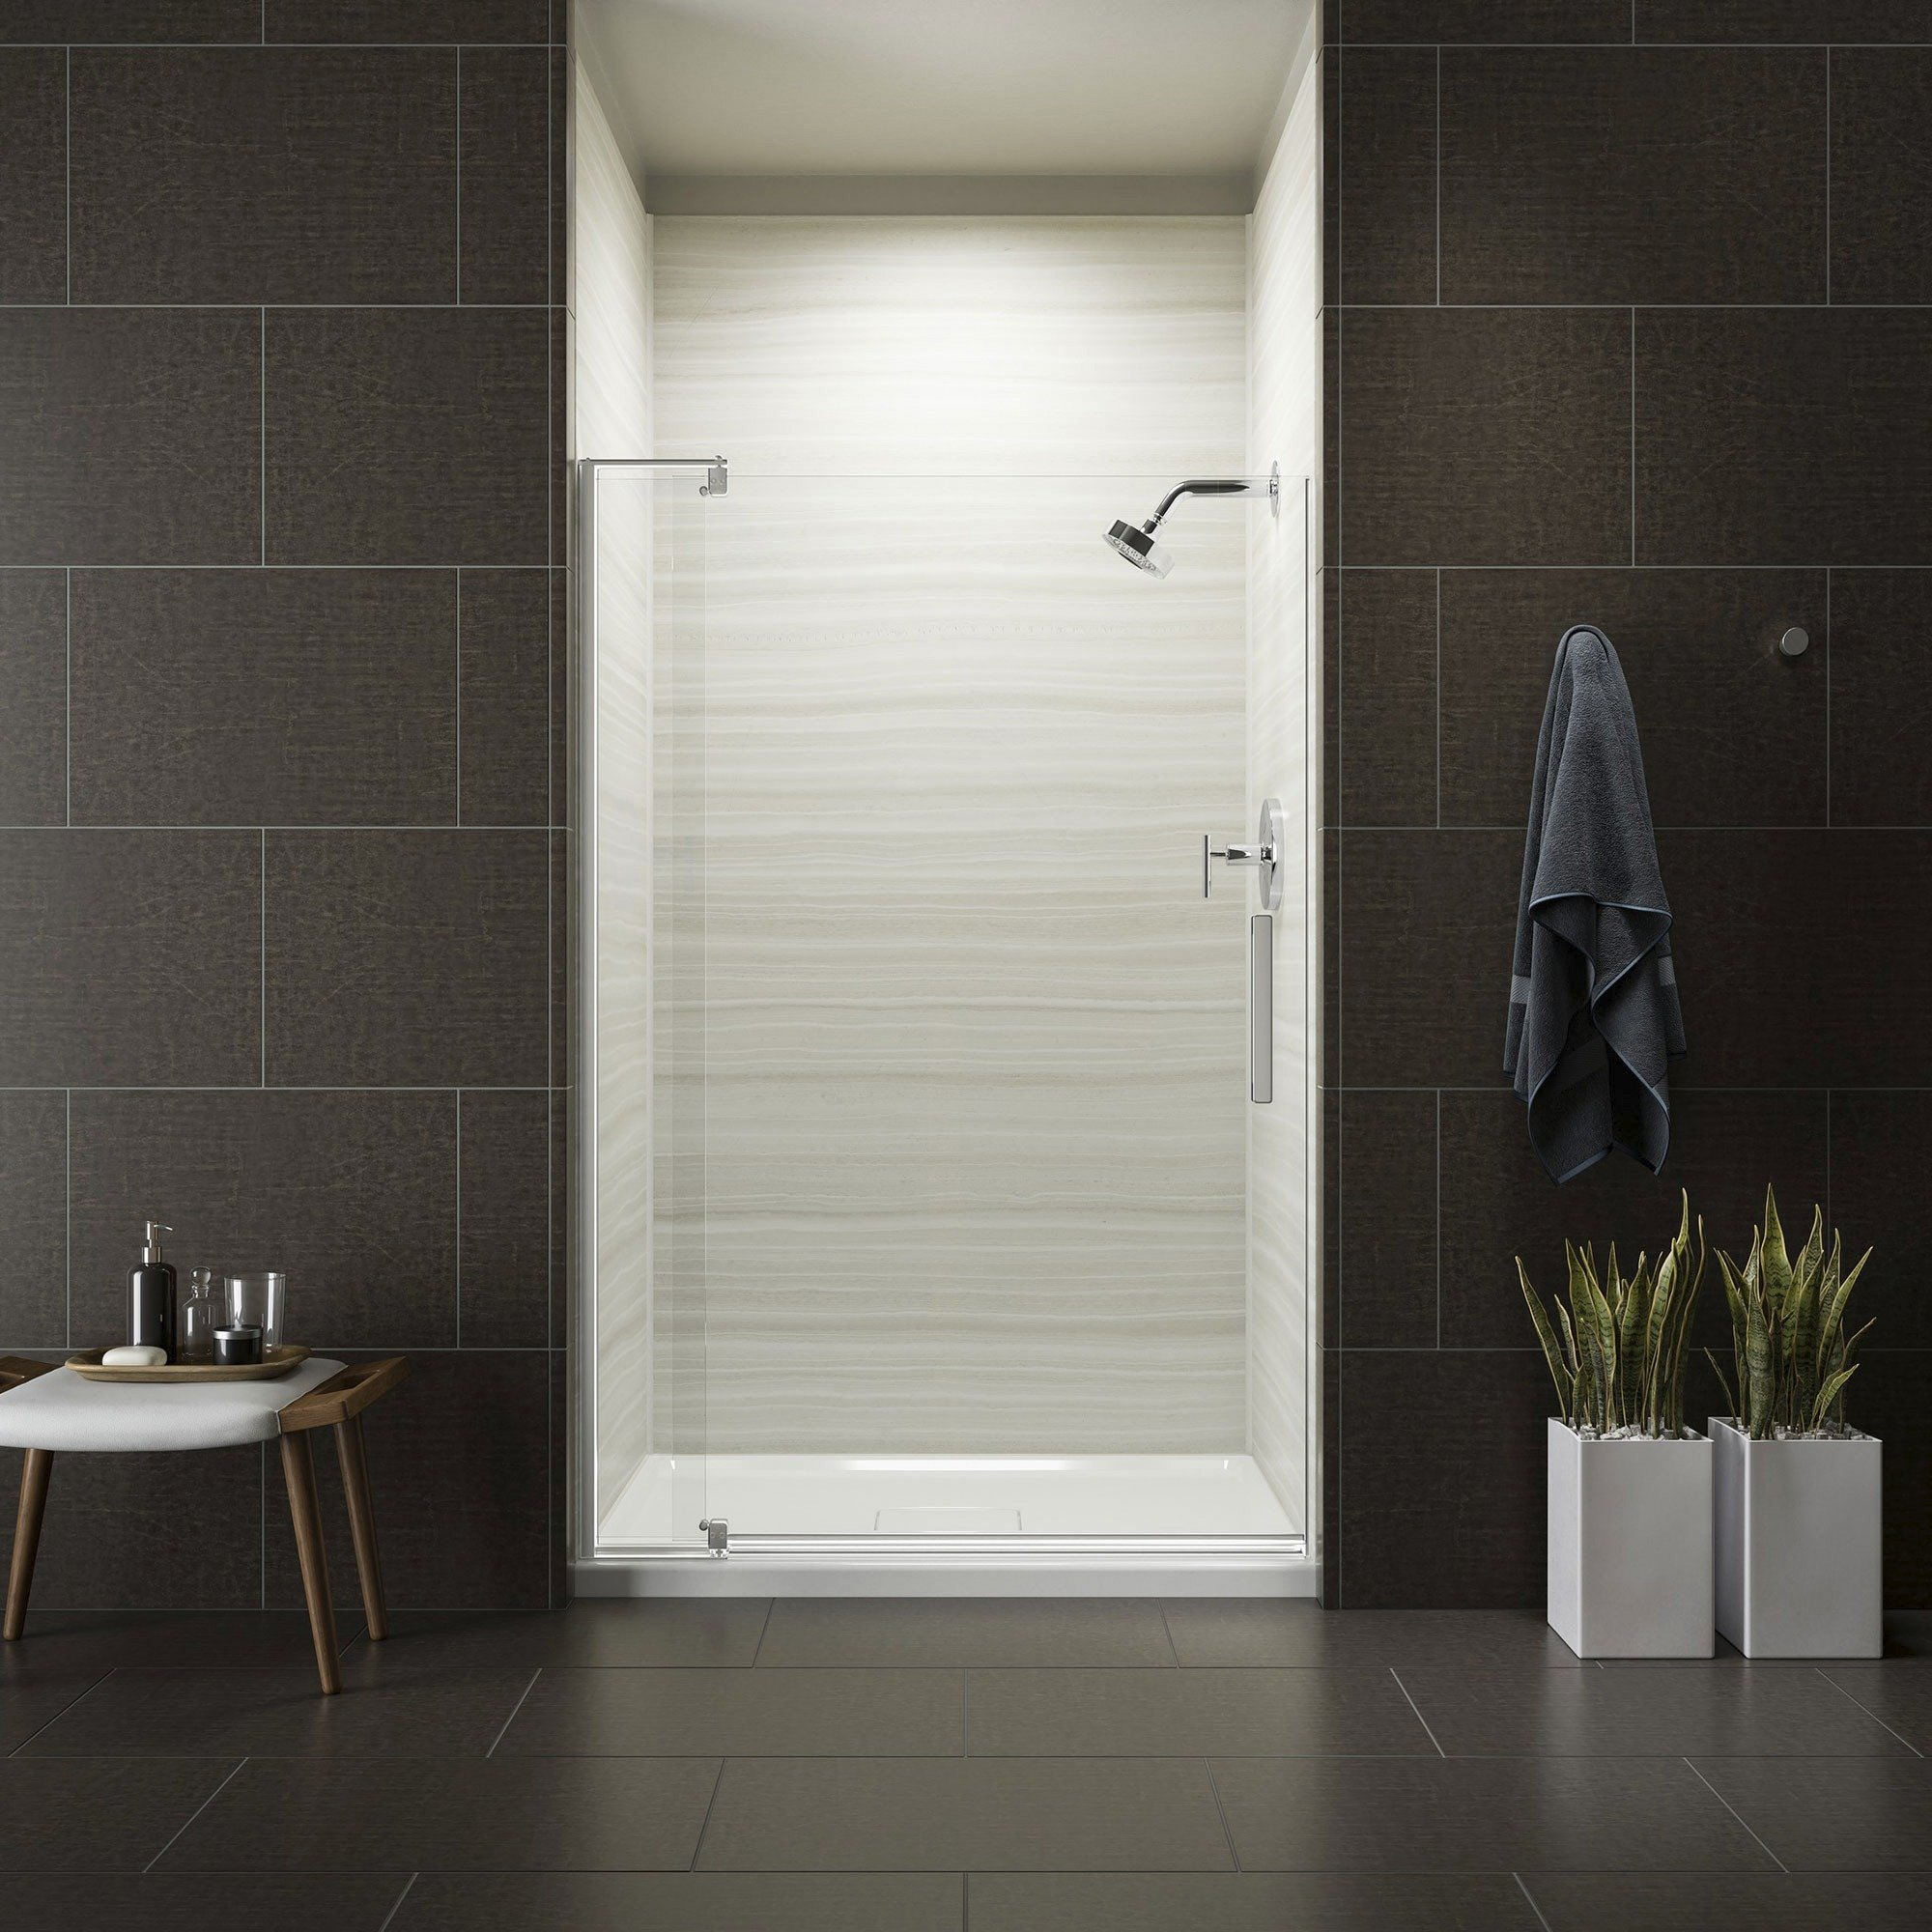 KOHLER K-707551-L-SHP Revel Pivot Shower Door with 5/16'' Thick Crystal Clear Glass, 70 x 43-1/8 x 48'', Bright Polished Silver